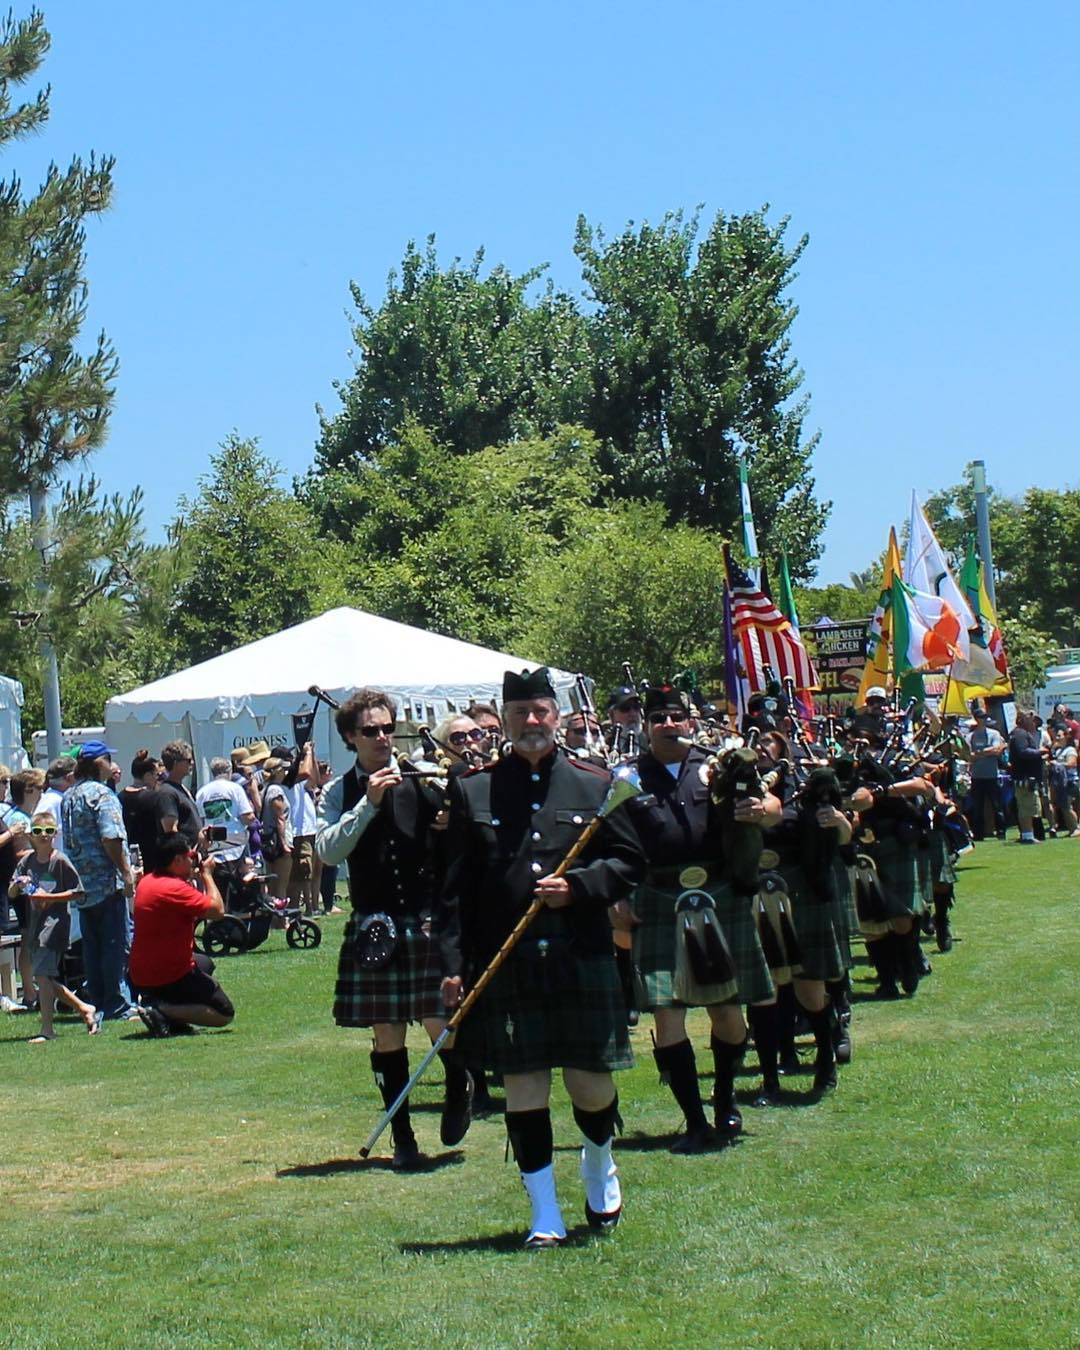 The 40th Irish Fair and Music Fest